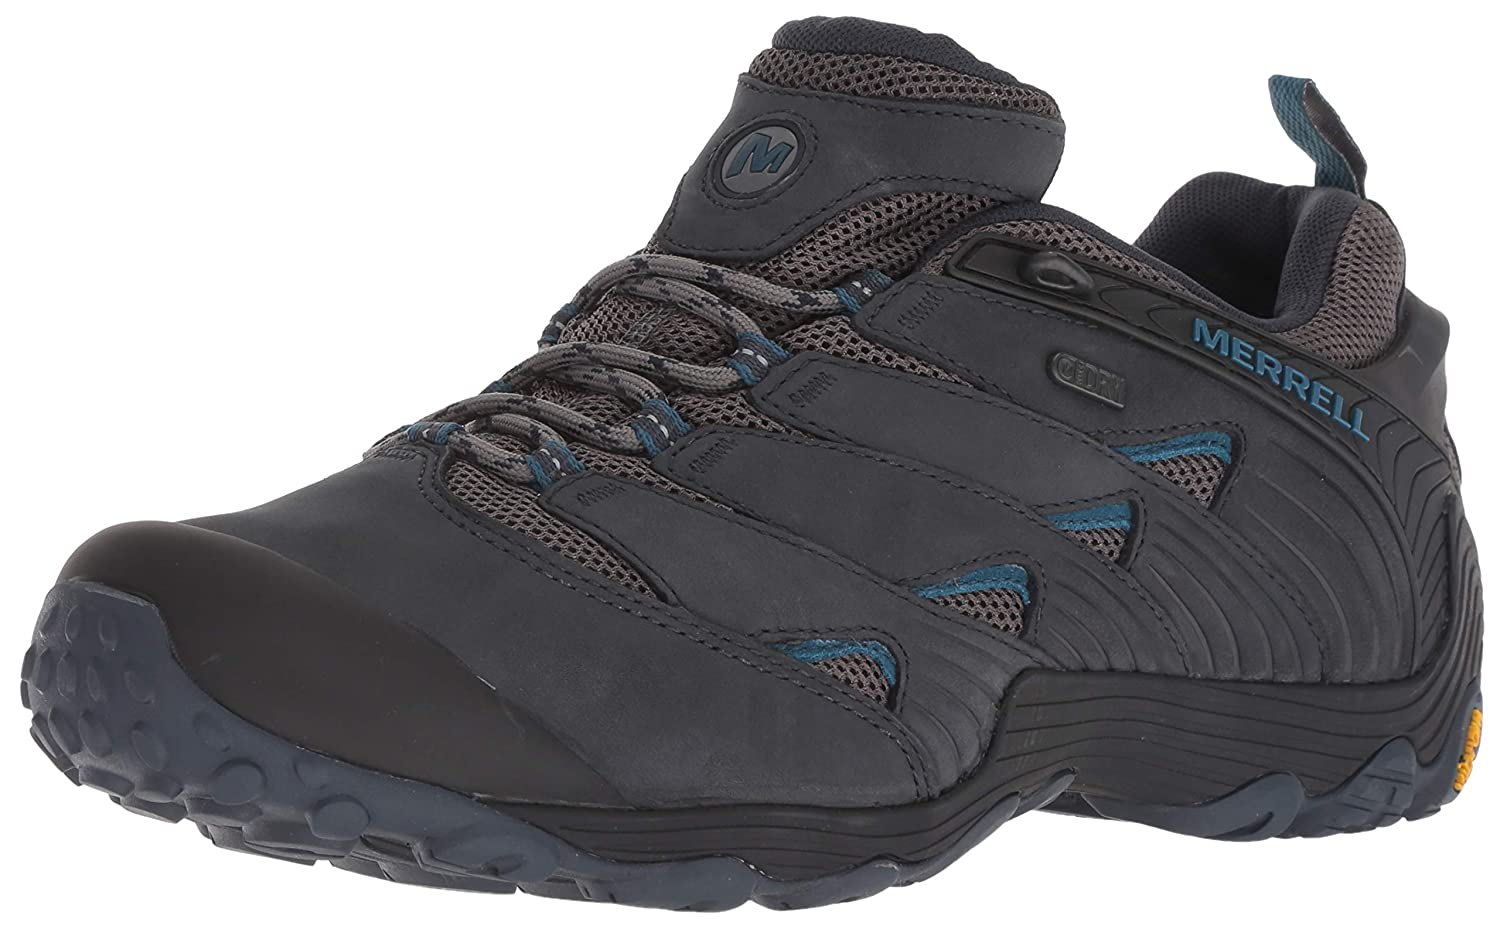 Merrell Men's Chameleon 7 Waterproof Hiking Shoe